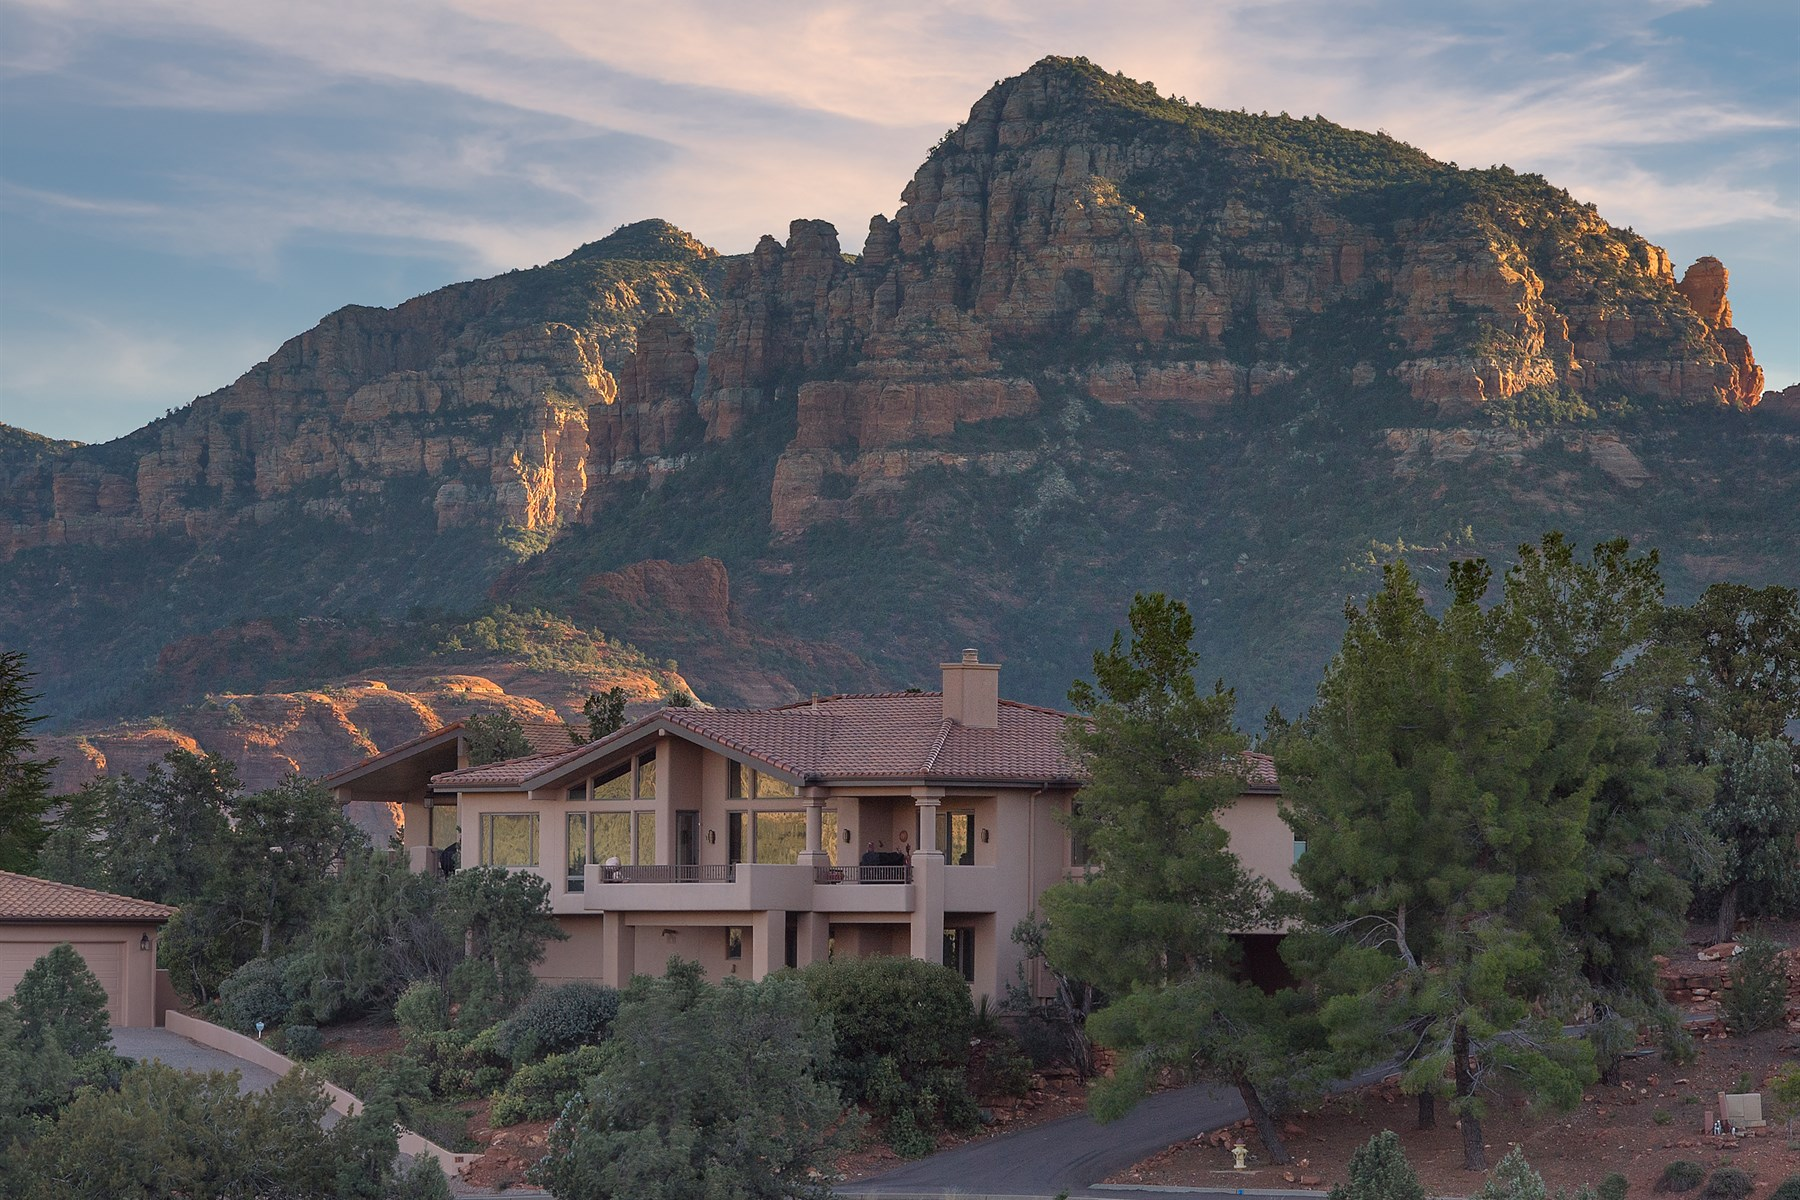 Casa Unifamiliar por un Venta en Gated Sedona neighborhood with spectacular panoramic views 192 Les Springs Lane Sedona, Arizona, 86336 Estados Unidos